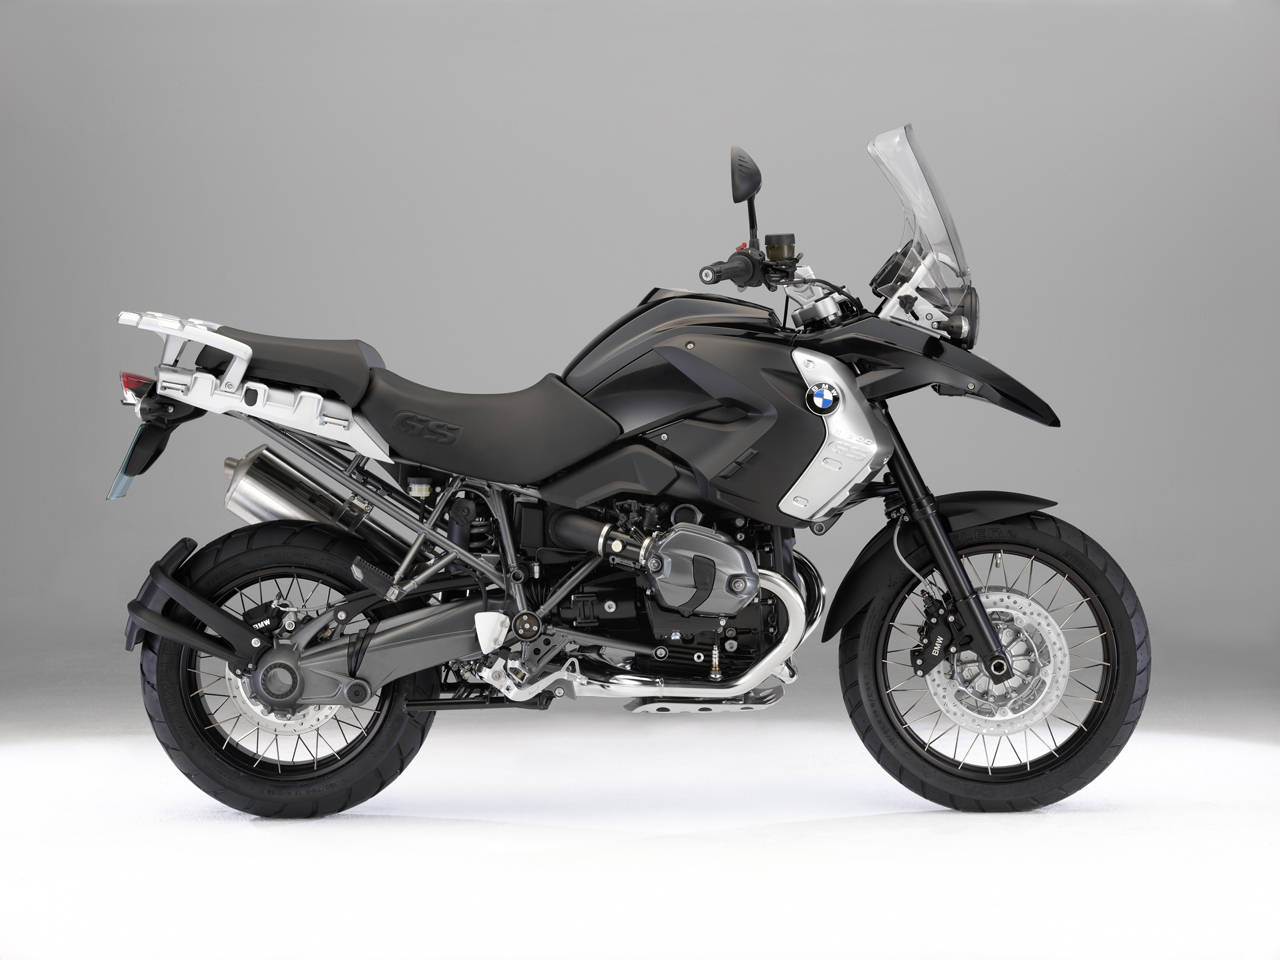 BMW R1200GS Adventure Triple Black 2013 images #8623